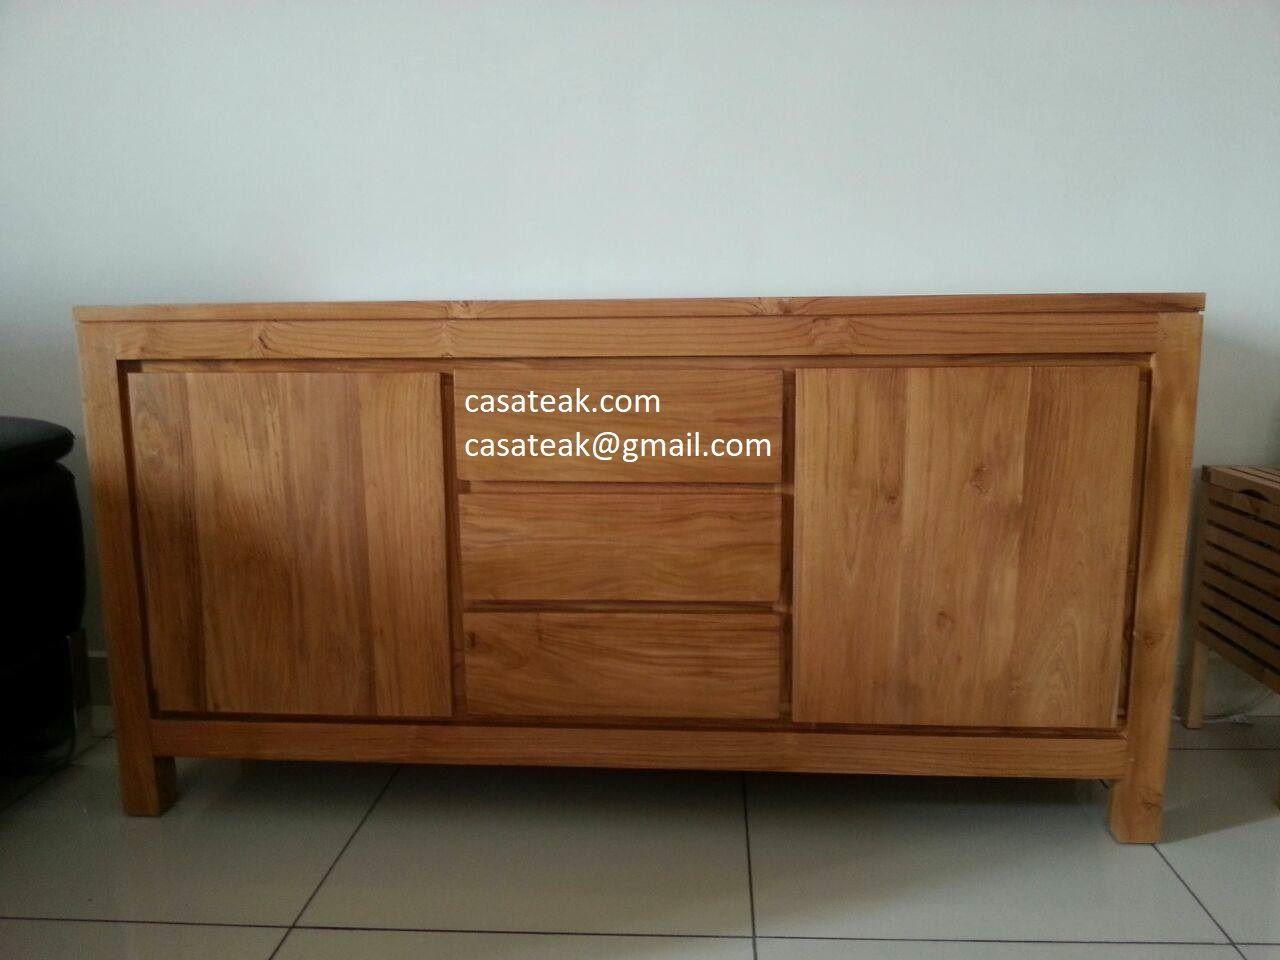 Teak Furniture Malaysia Teak Wood Furniture Shop Selangor Teak Furniture Teak Wood Teak